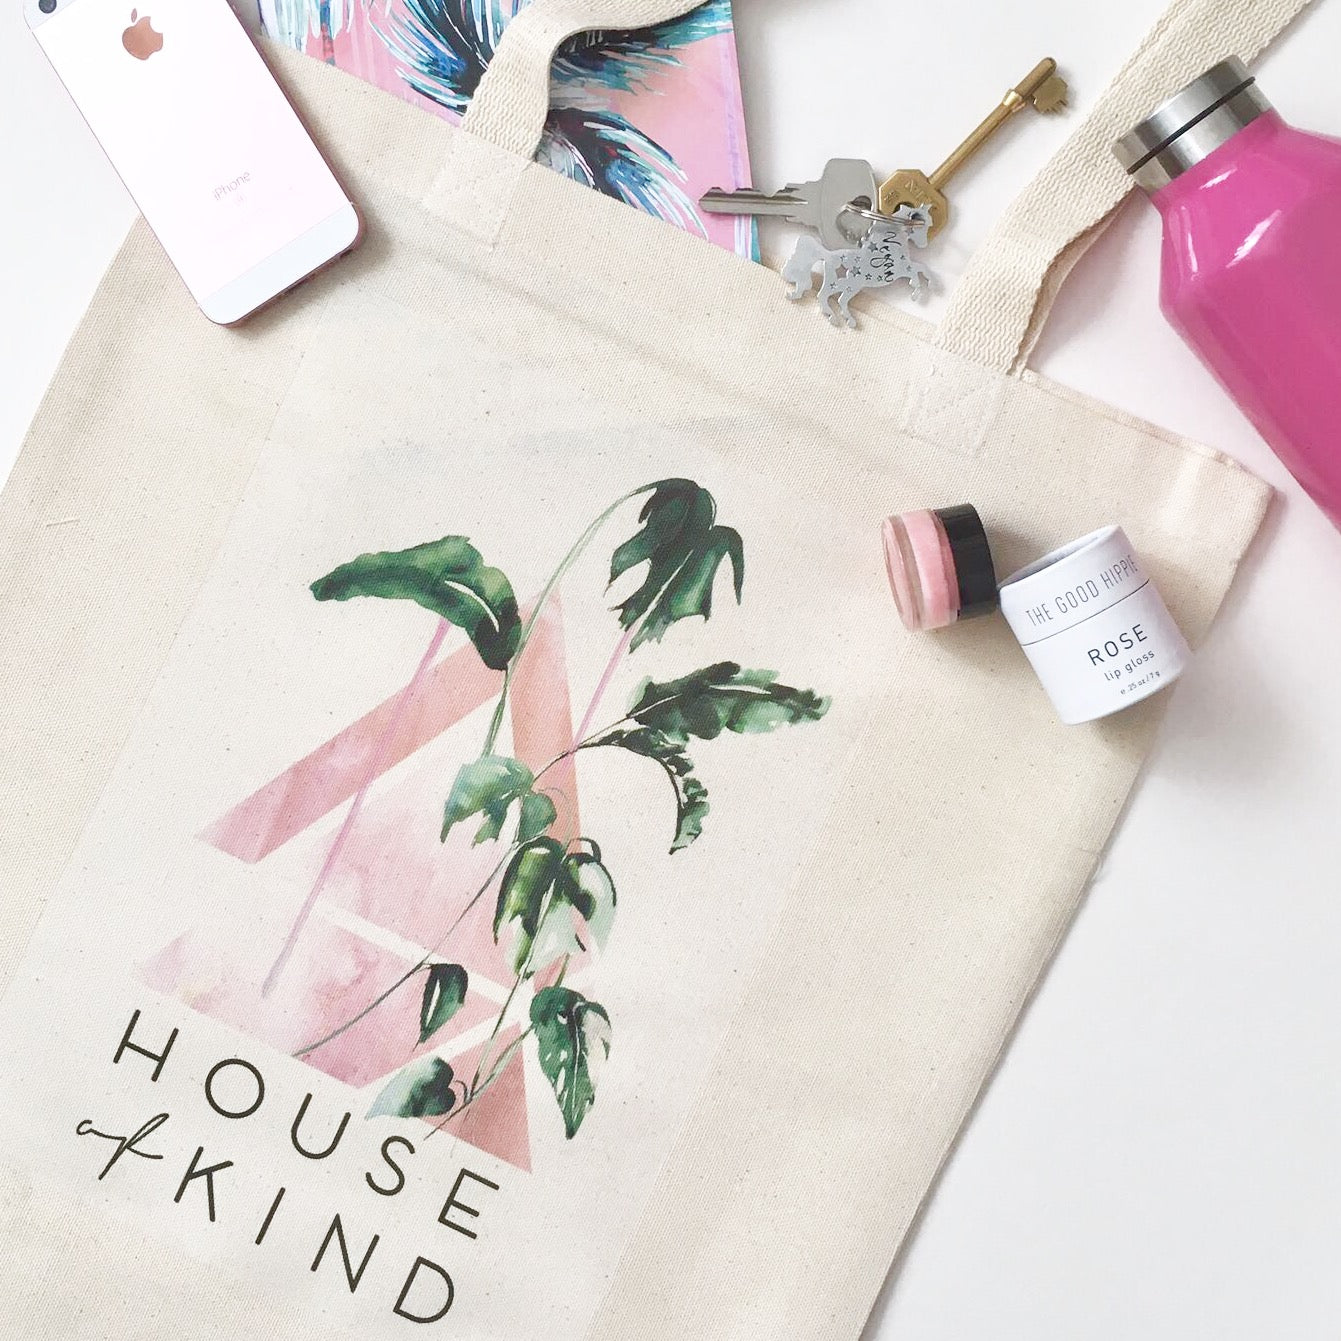 Lifestyle shot of ethical, cotton tote bag with House of Kind logo designed by Nikki Strange